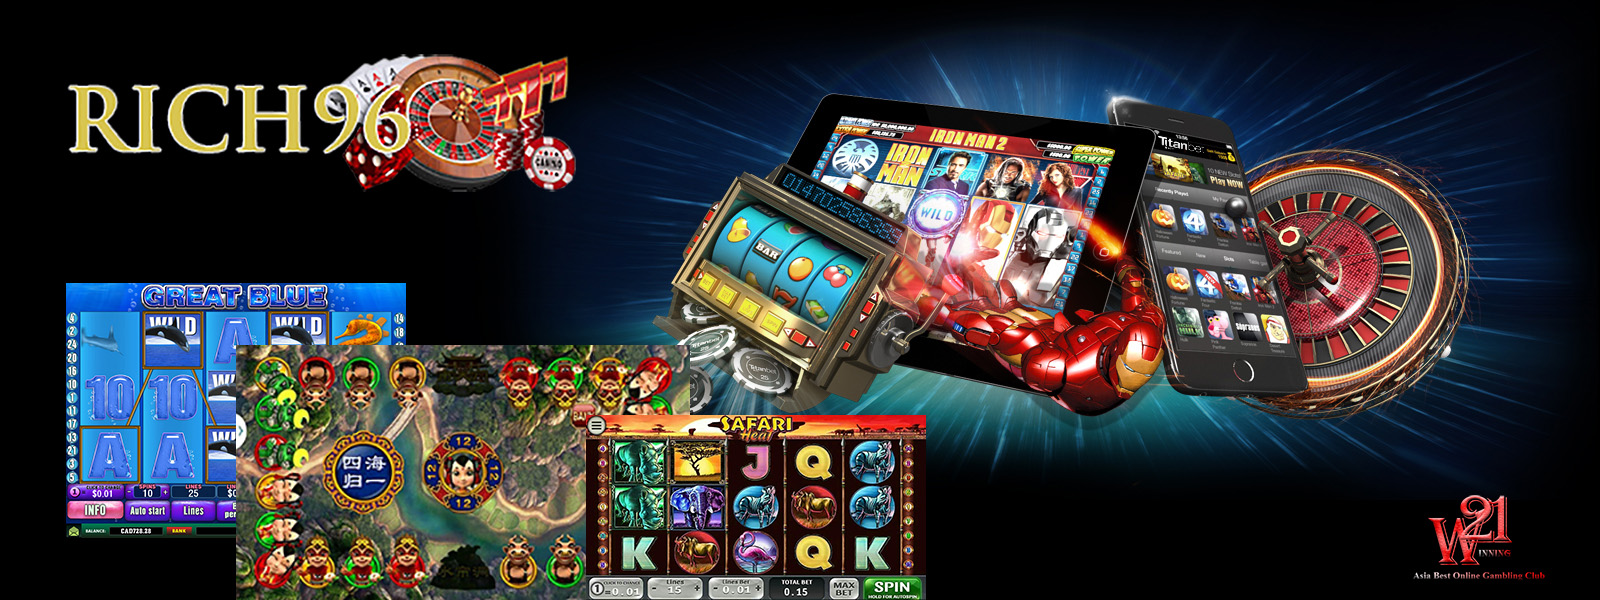 deutsche online casino casino games